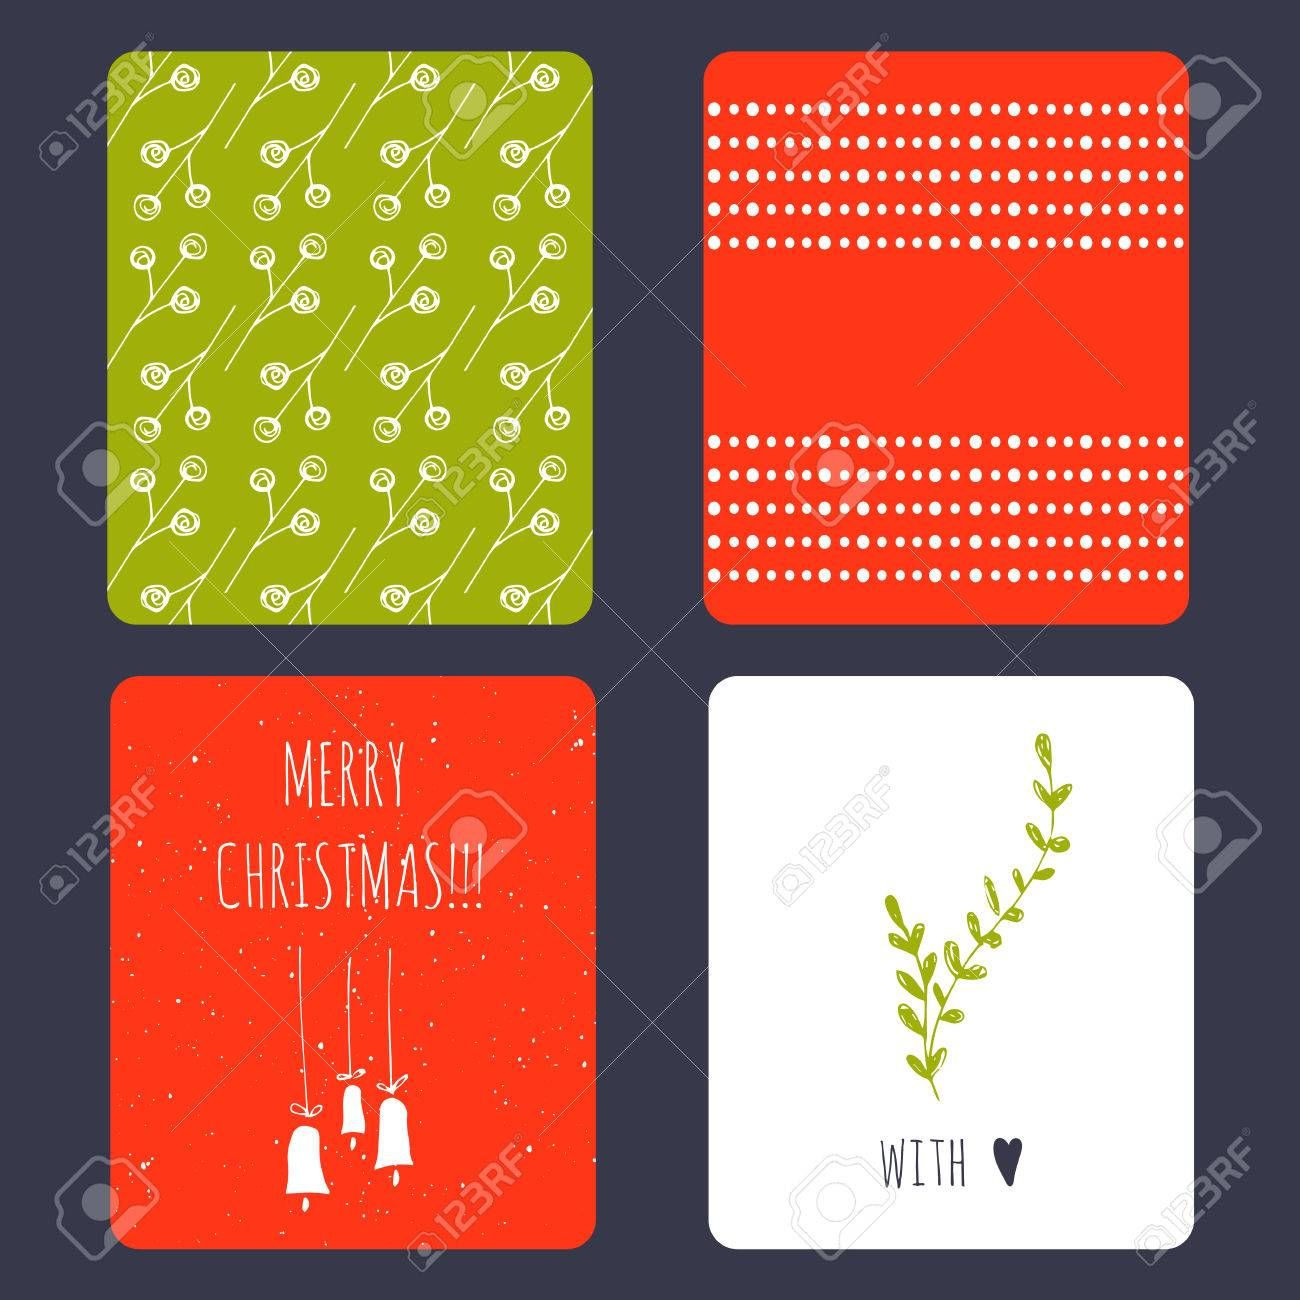 The Surprising Set Of Winter Small Card Templates Collection For Christmas Within Small G Greeting Card Template Holiday Card Template Christmas Card Template